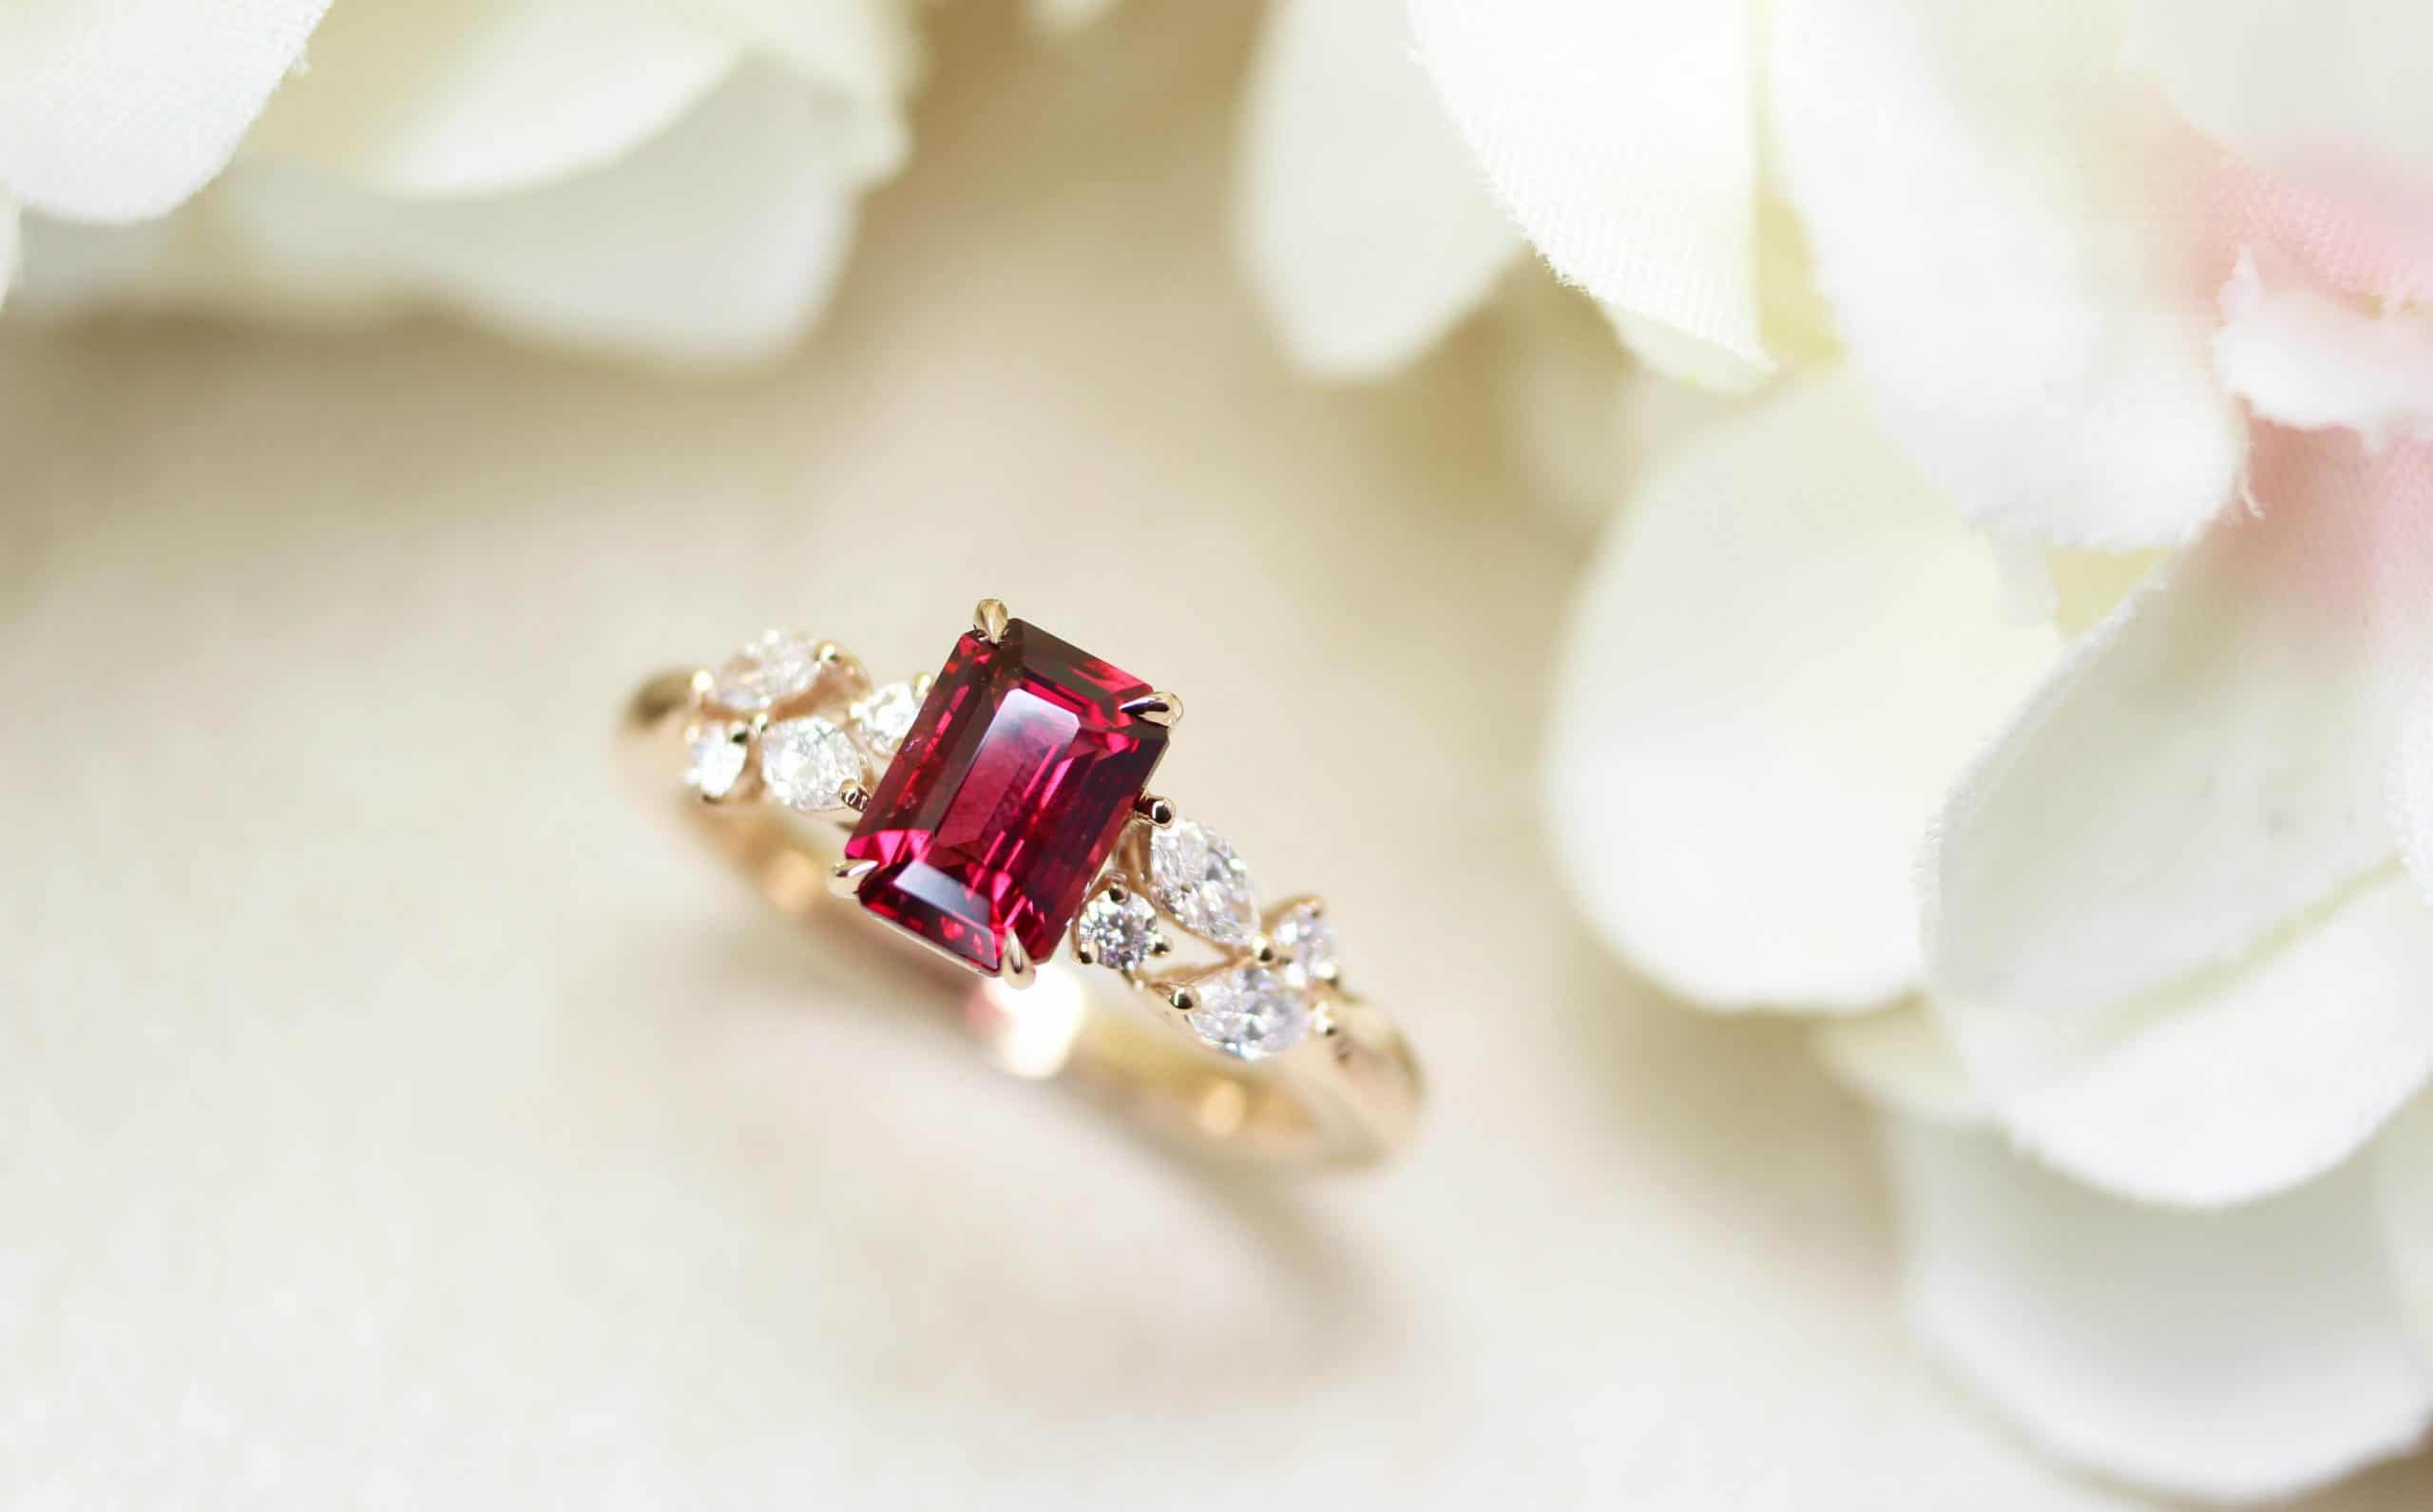 Customised Red Spinel Ring customised for a unique birthday - Red spinel coloured gemstone | Local Singapore Private Jewellery in customised coloured gemstone